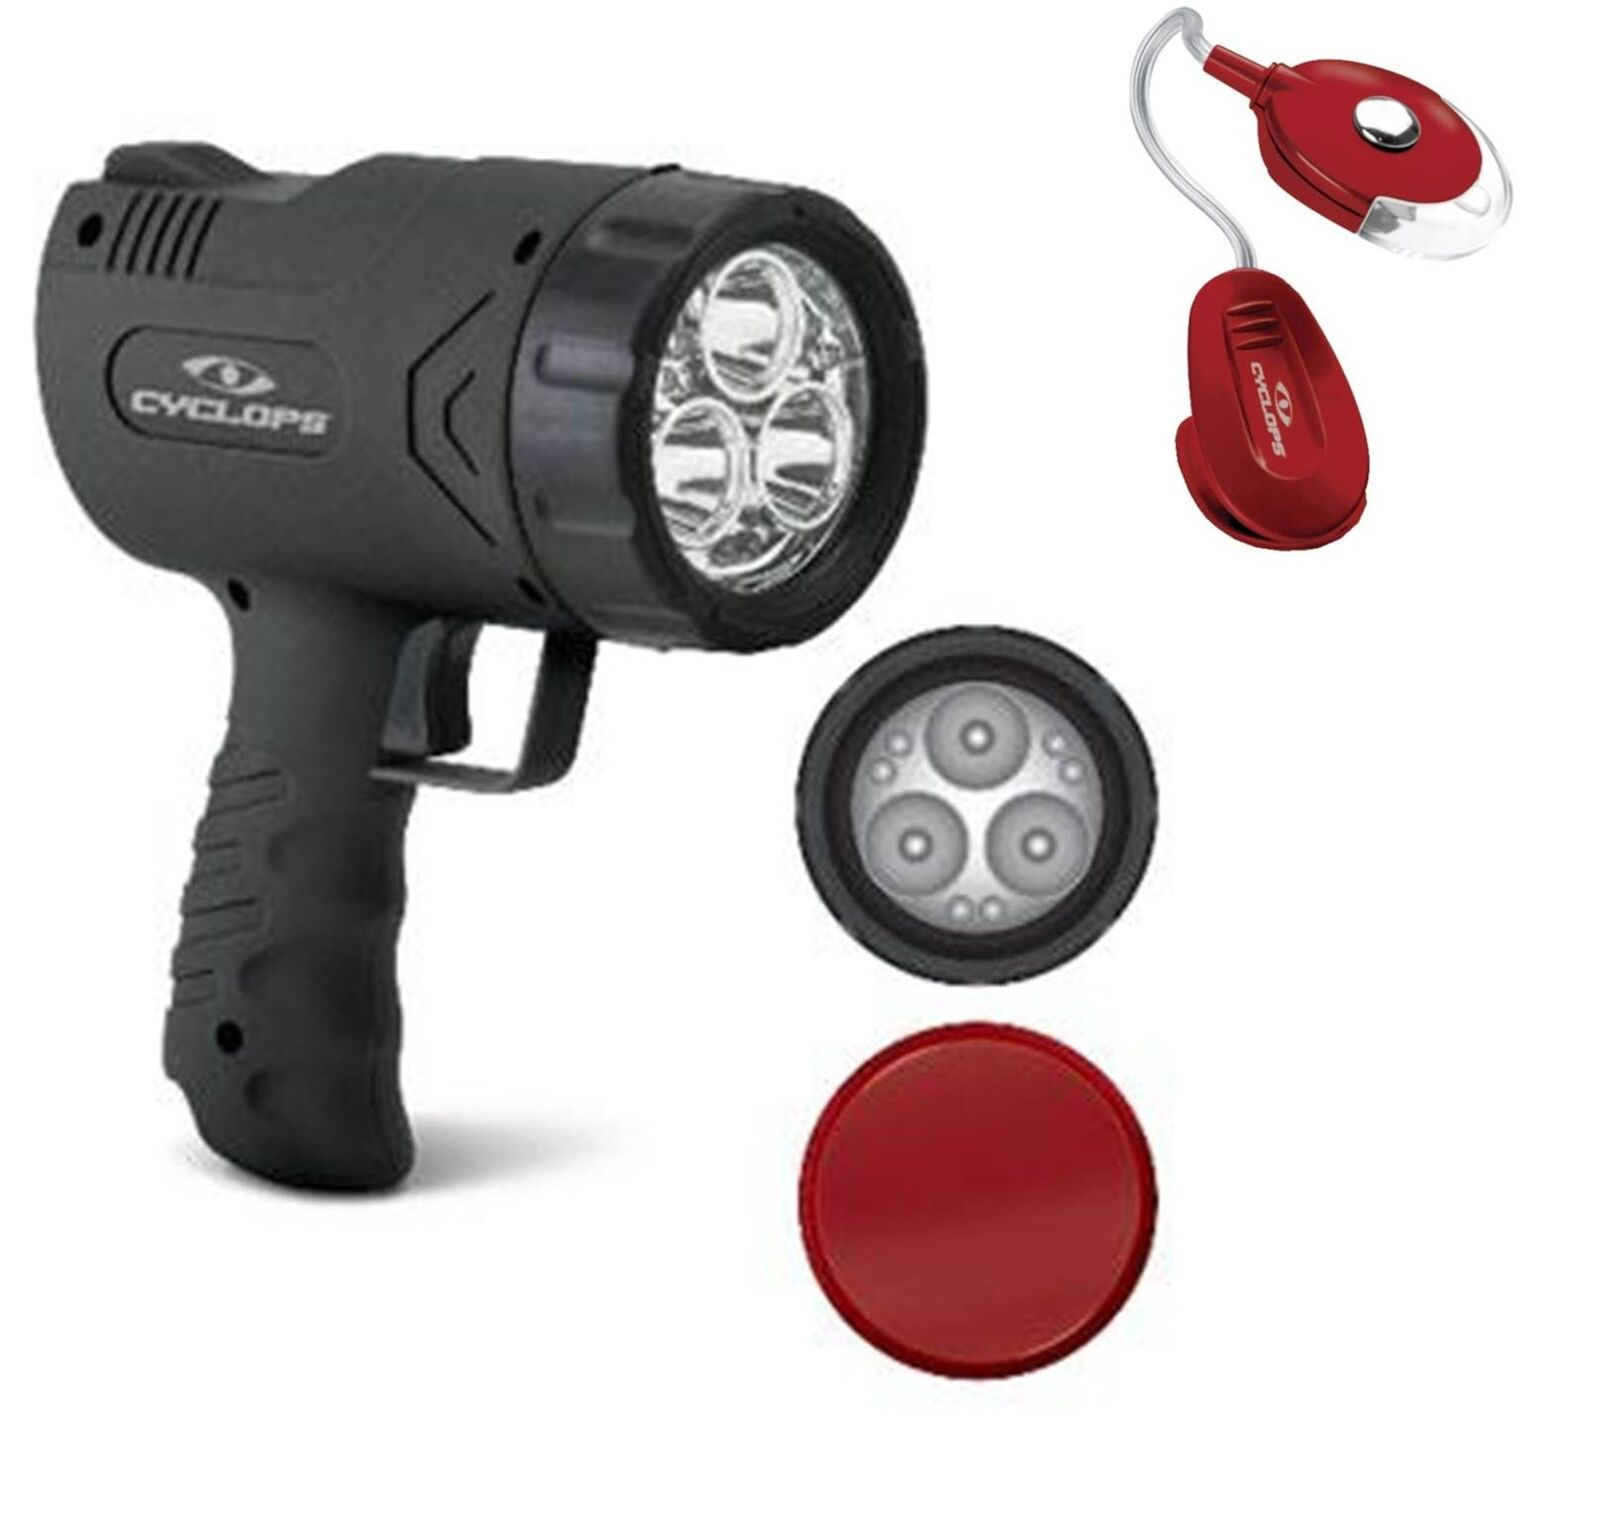 Hunting Spotlight  Rechargeable 1100 Lumen Handheld Cyclops Bonus Clip Light  team promotions